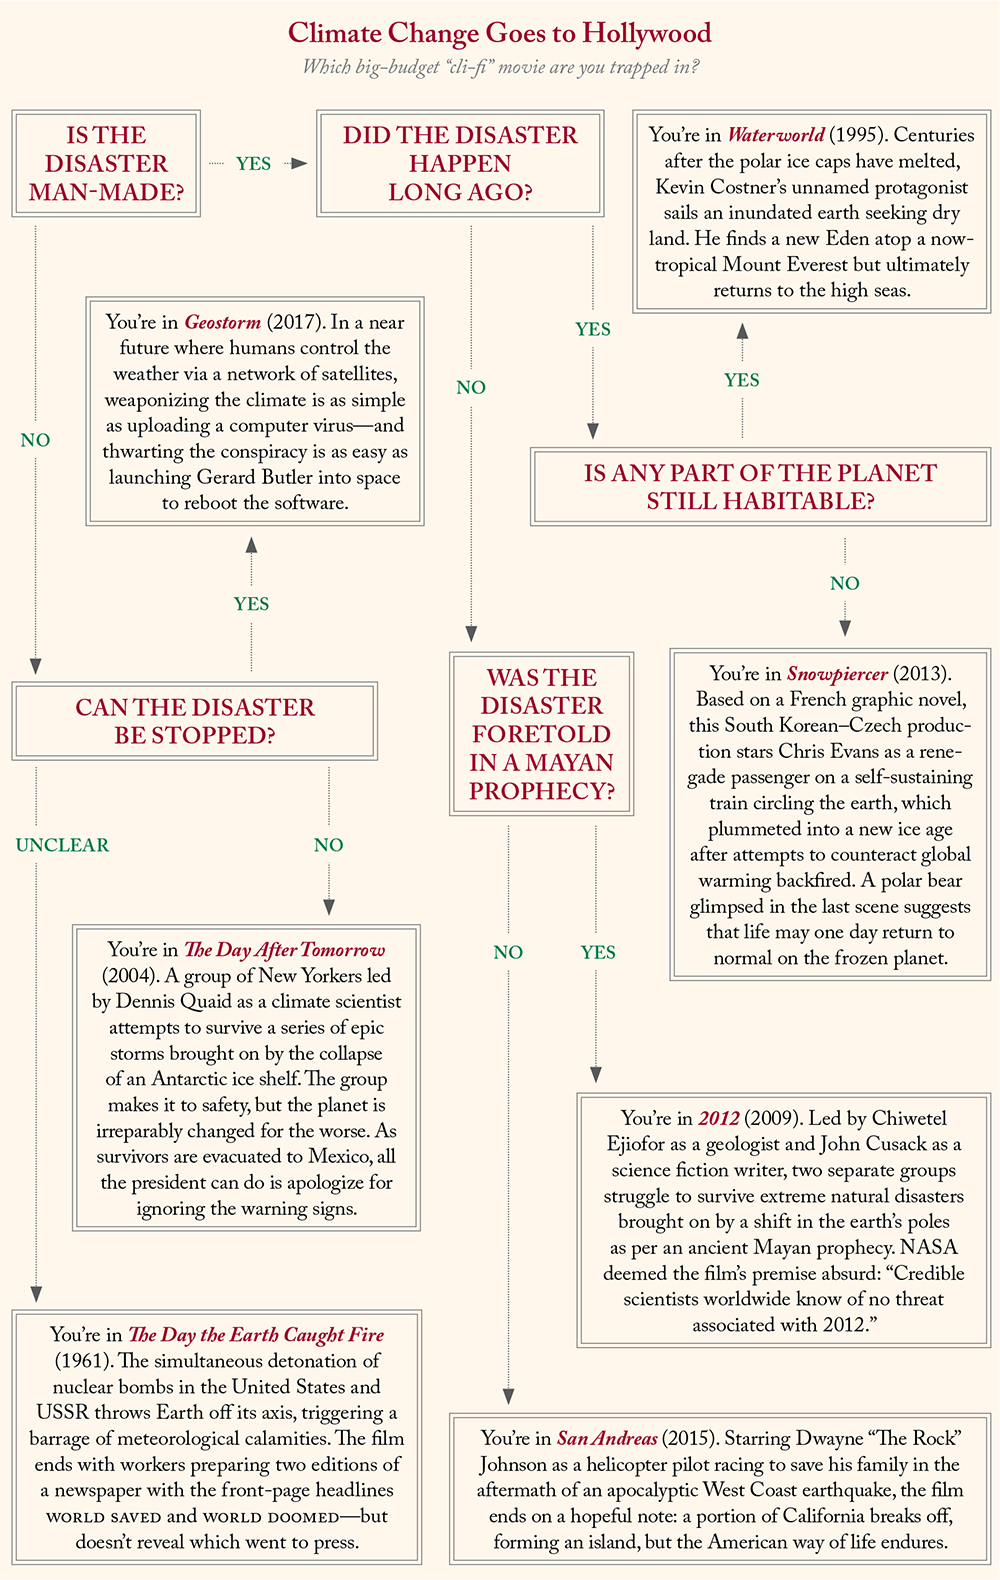 A flow chart of cli-fi disaster movies titled Climate Change Goes to Hollywood.